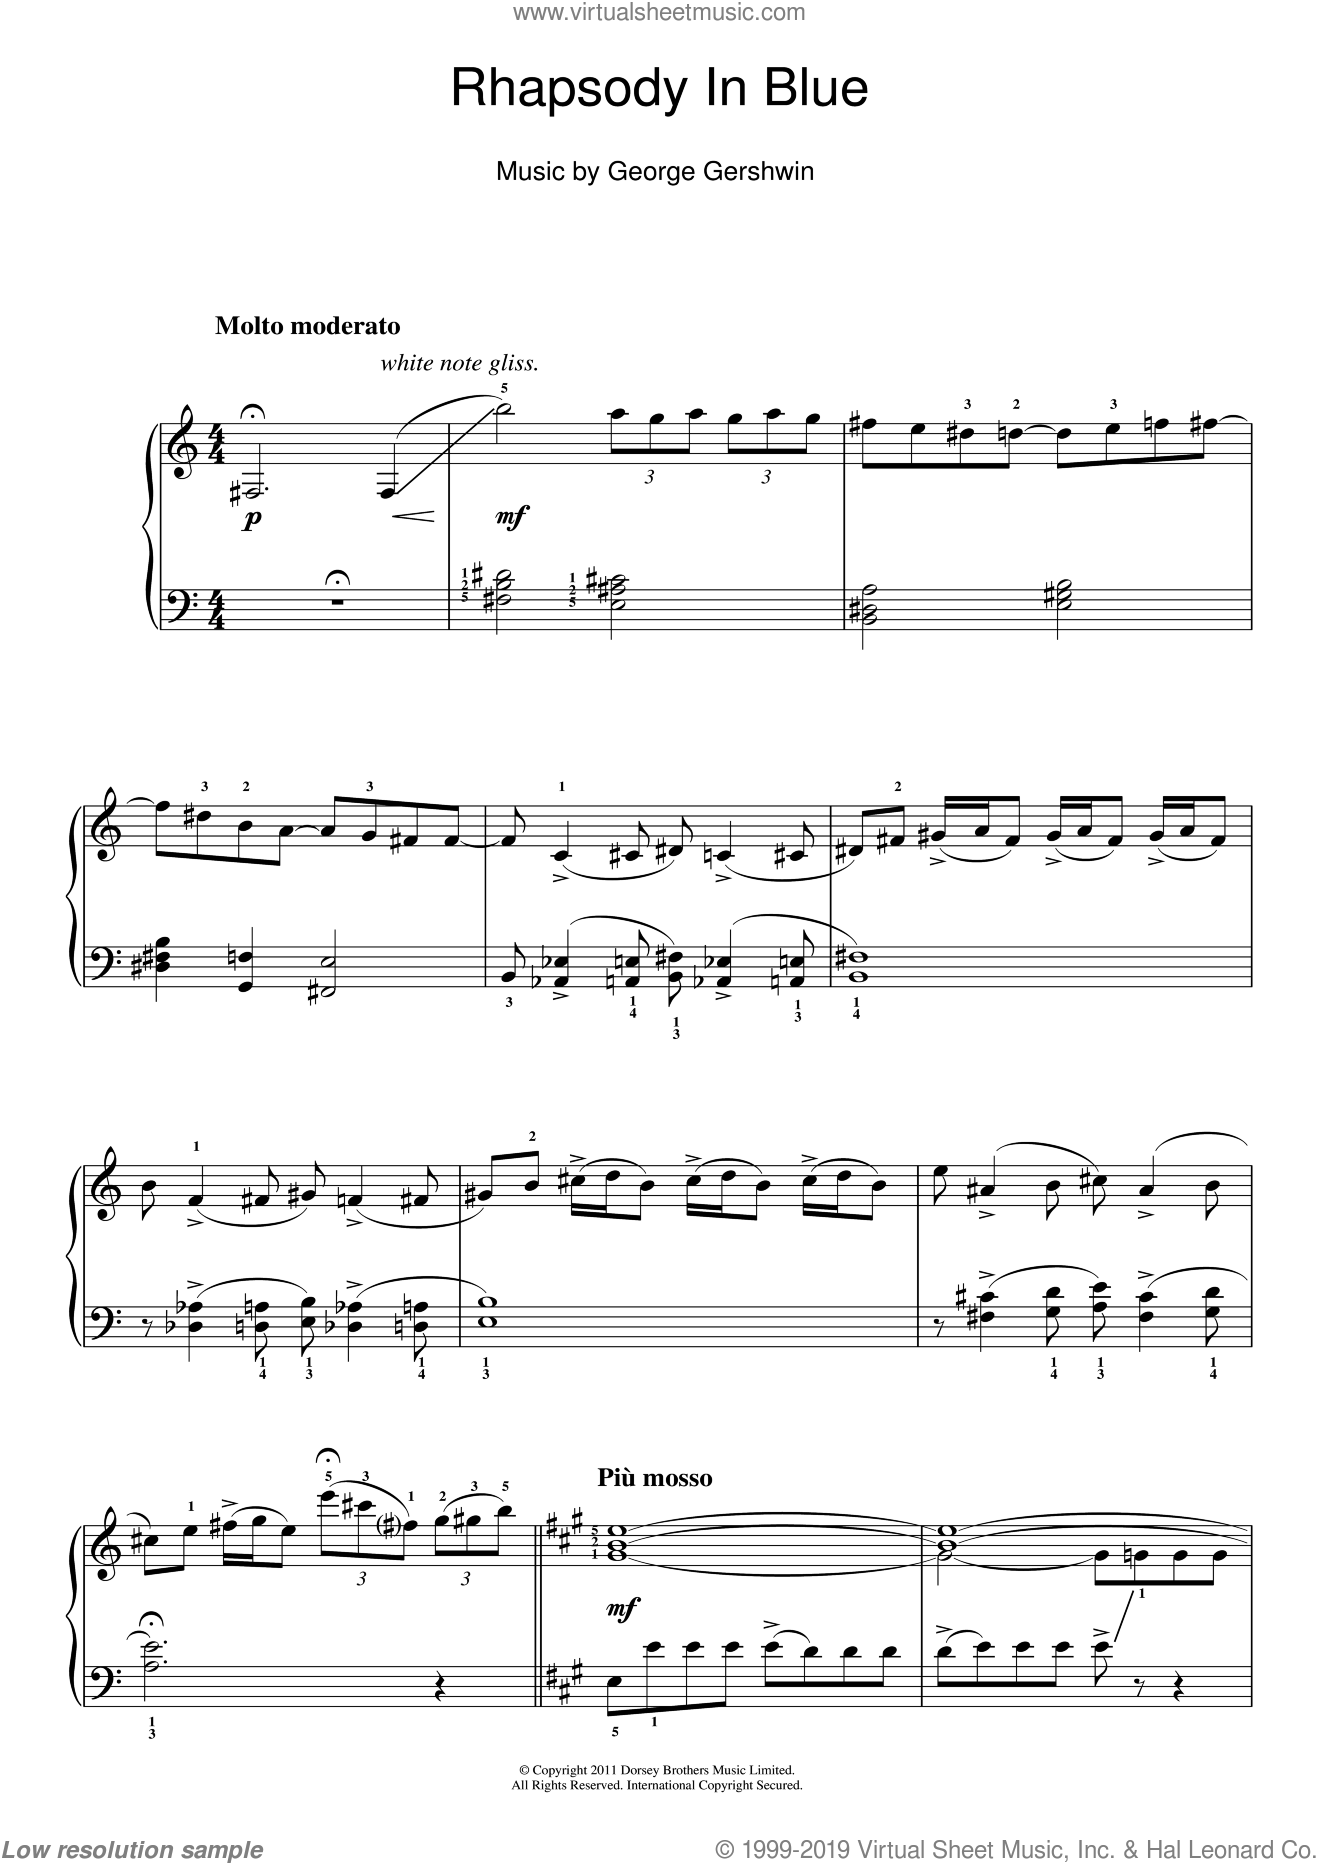 Rhapsody In Blue sheet music for piano solo by George Gershwin, easy